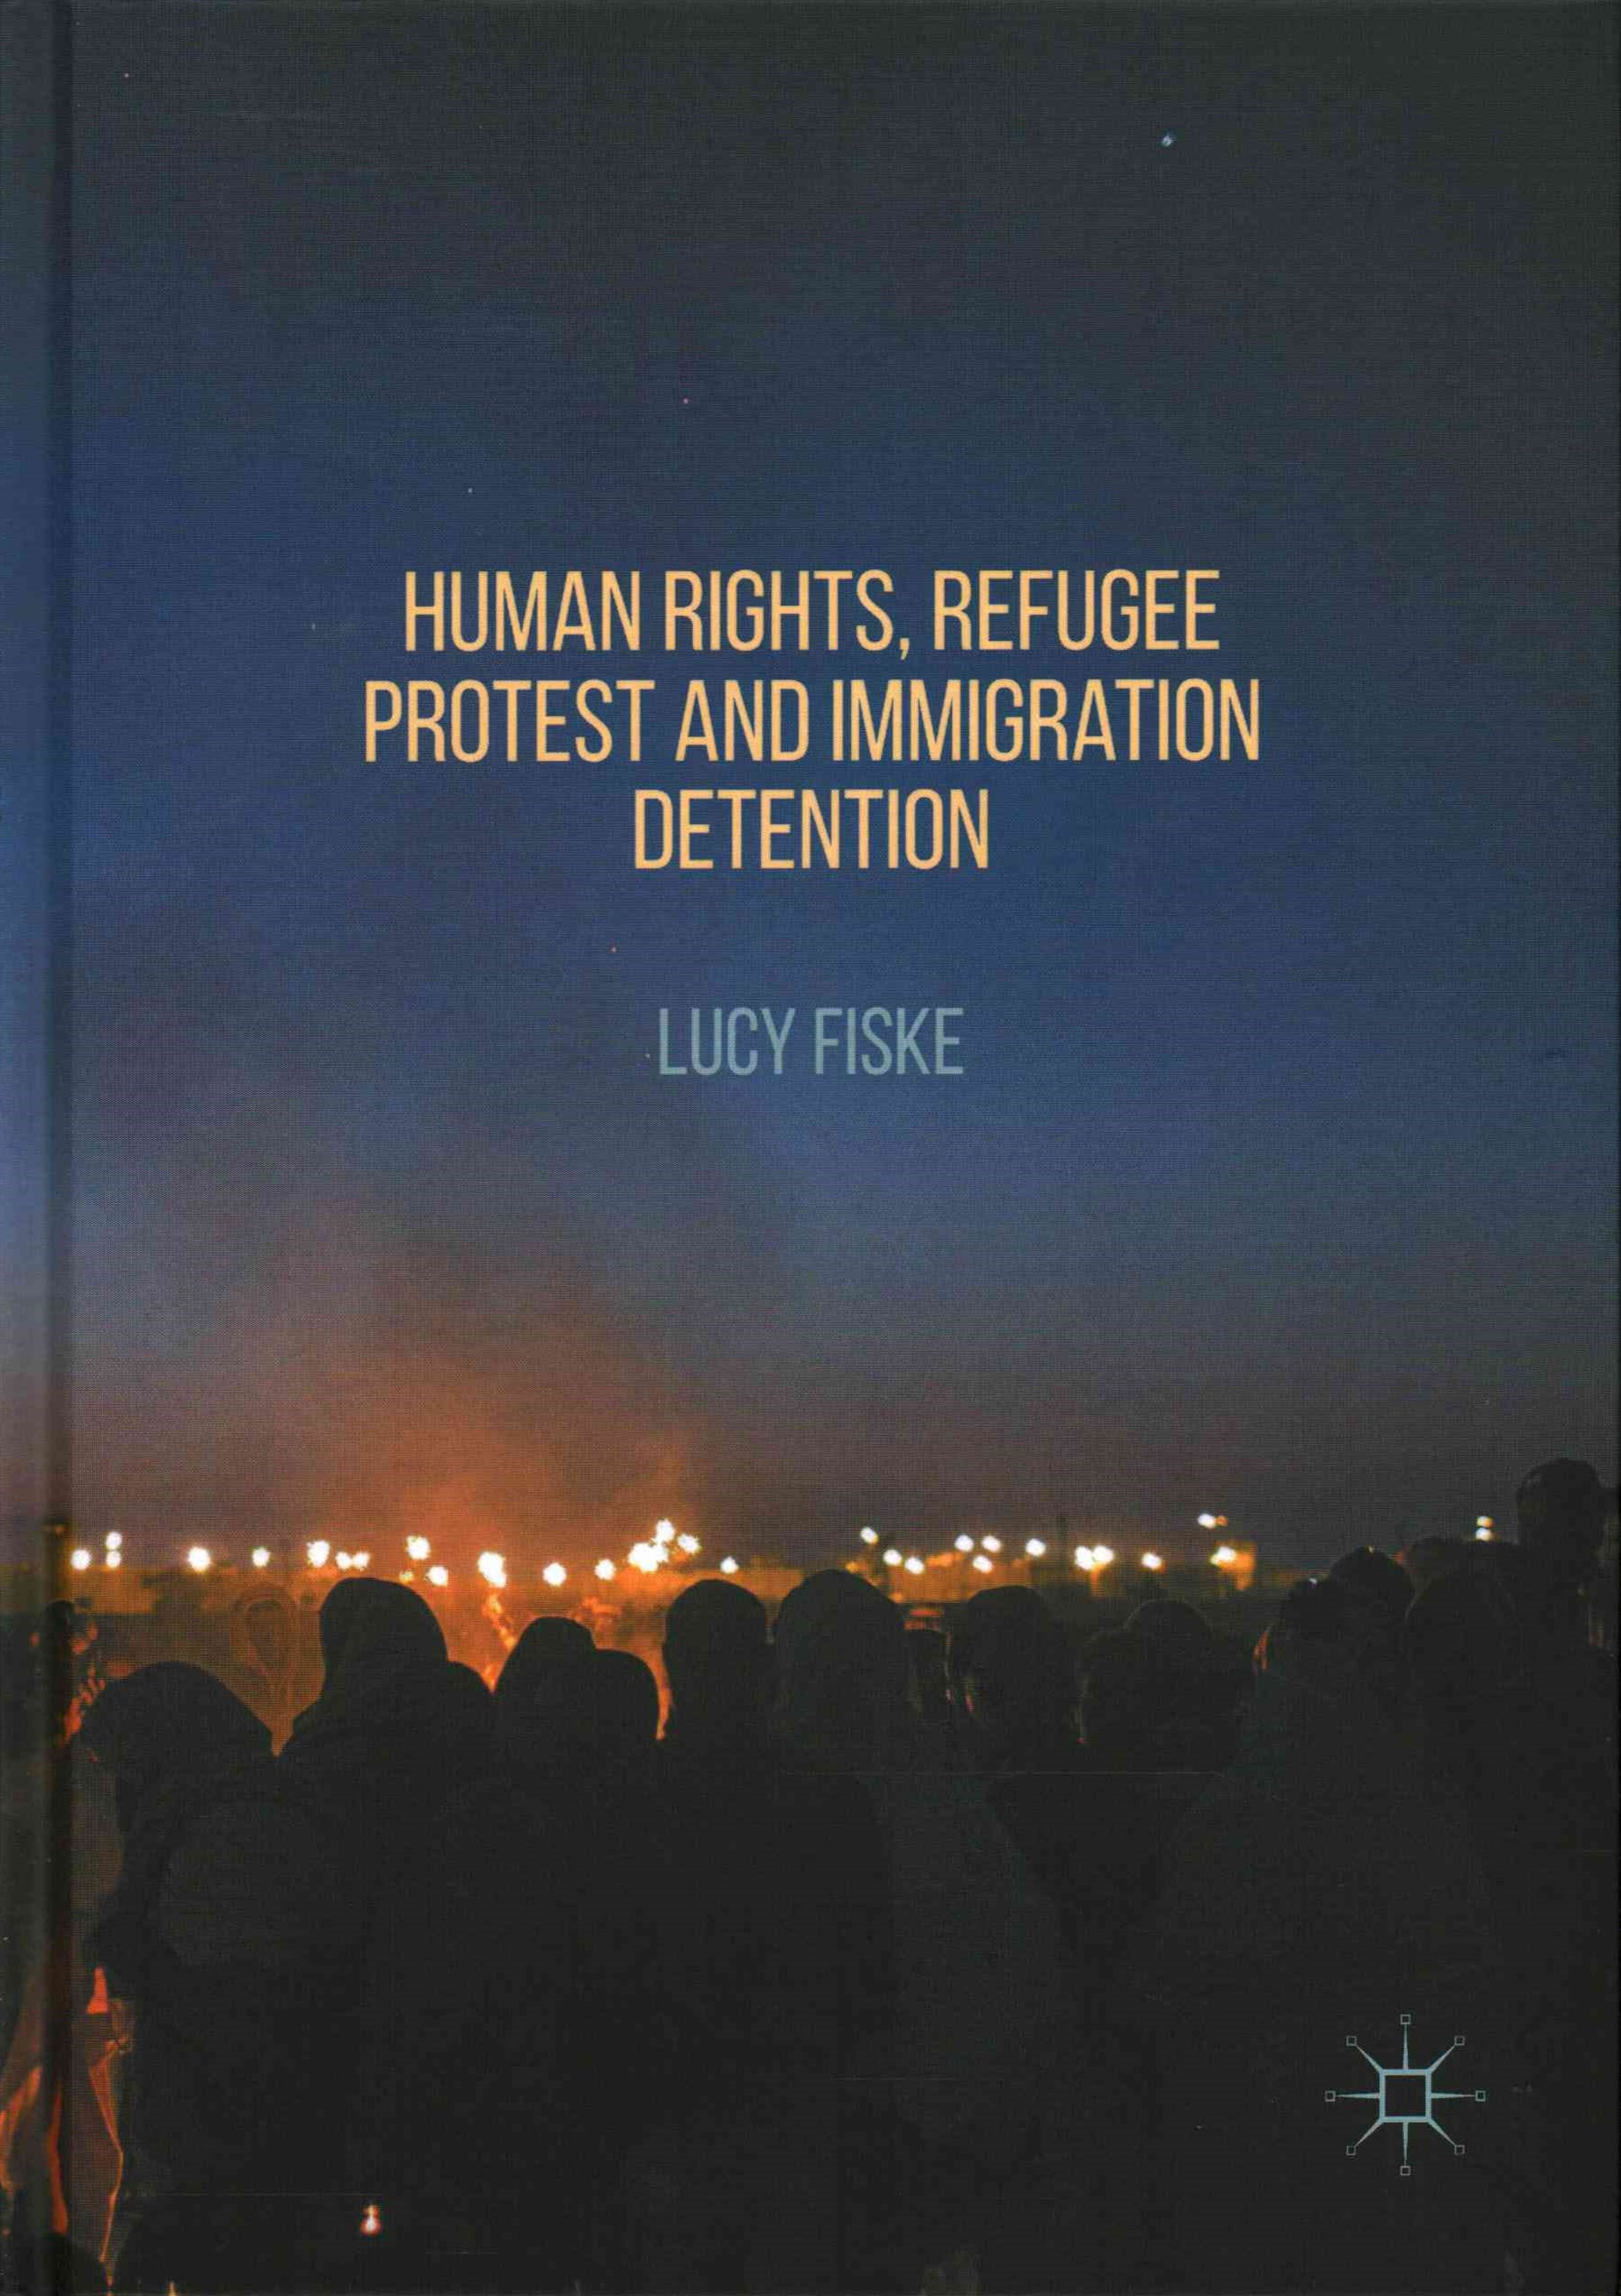 Human Rights, Refugee Protest and Immigration Detention